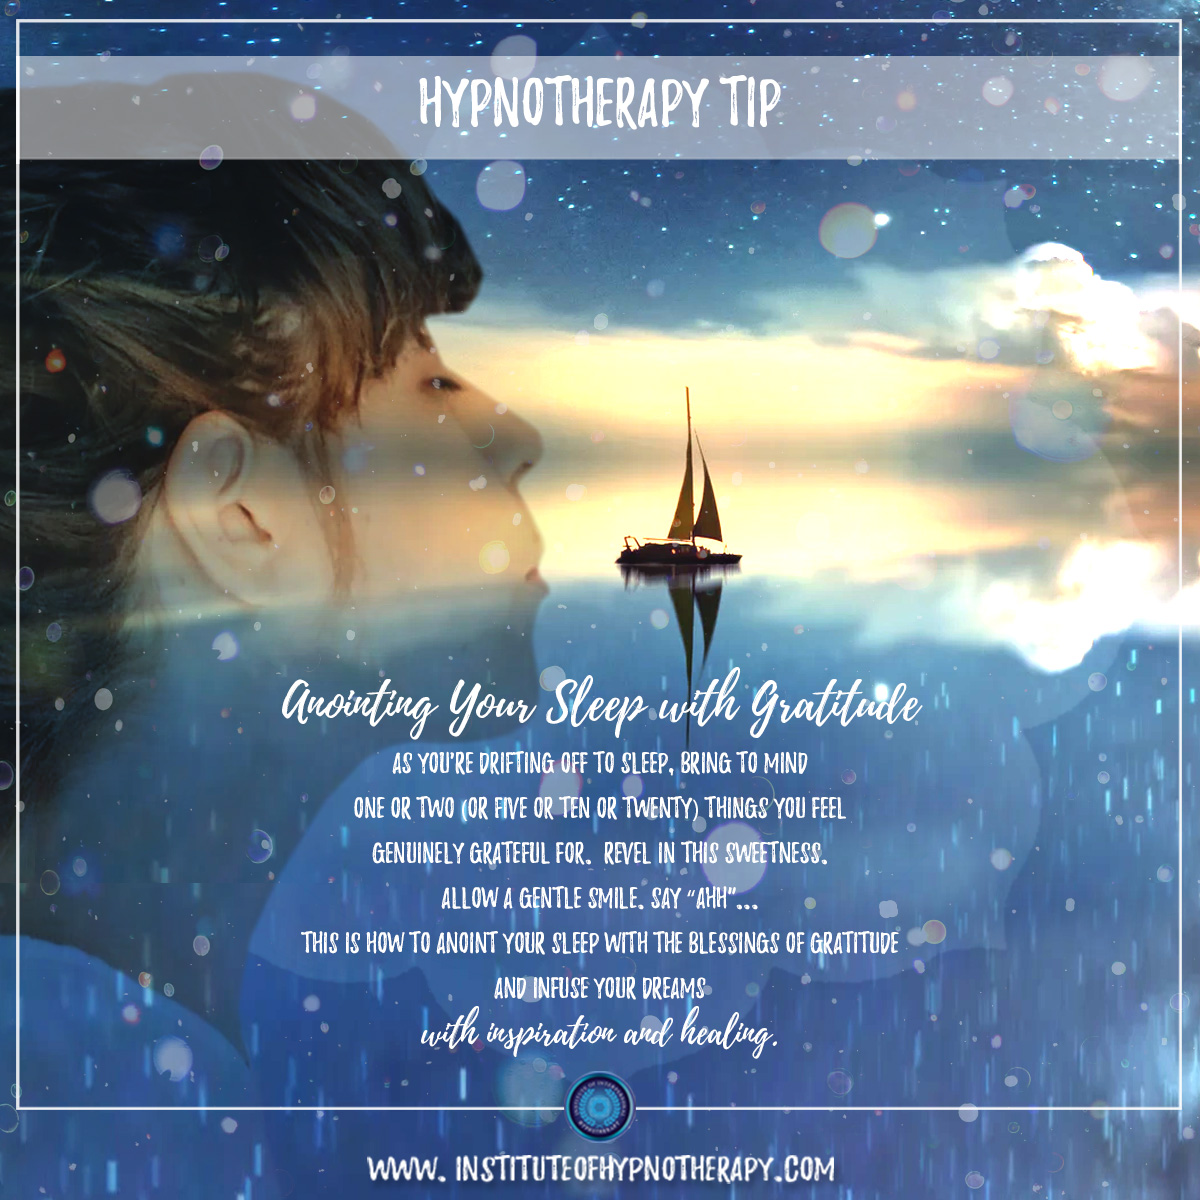 Hypnotherapy Tip : Anointing Your Sleep with Gratitude